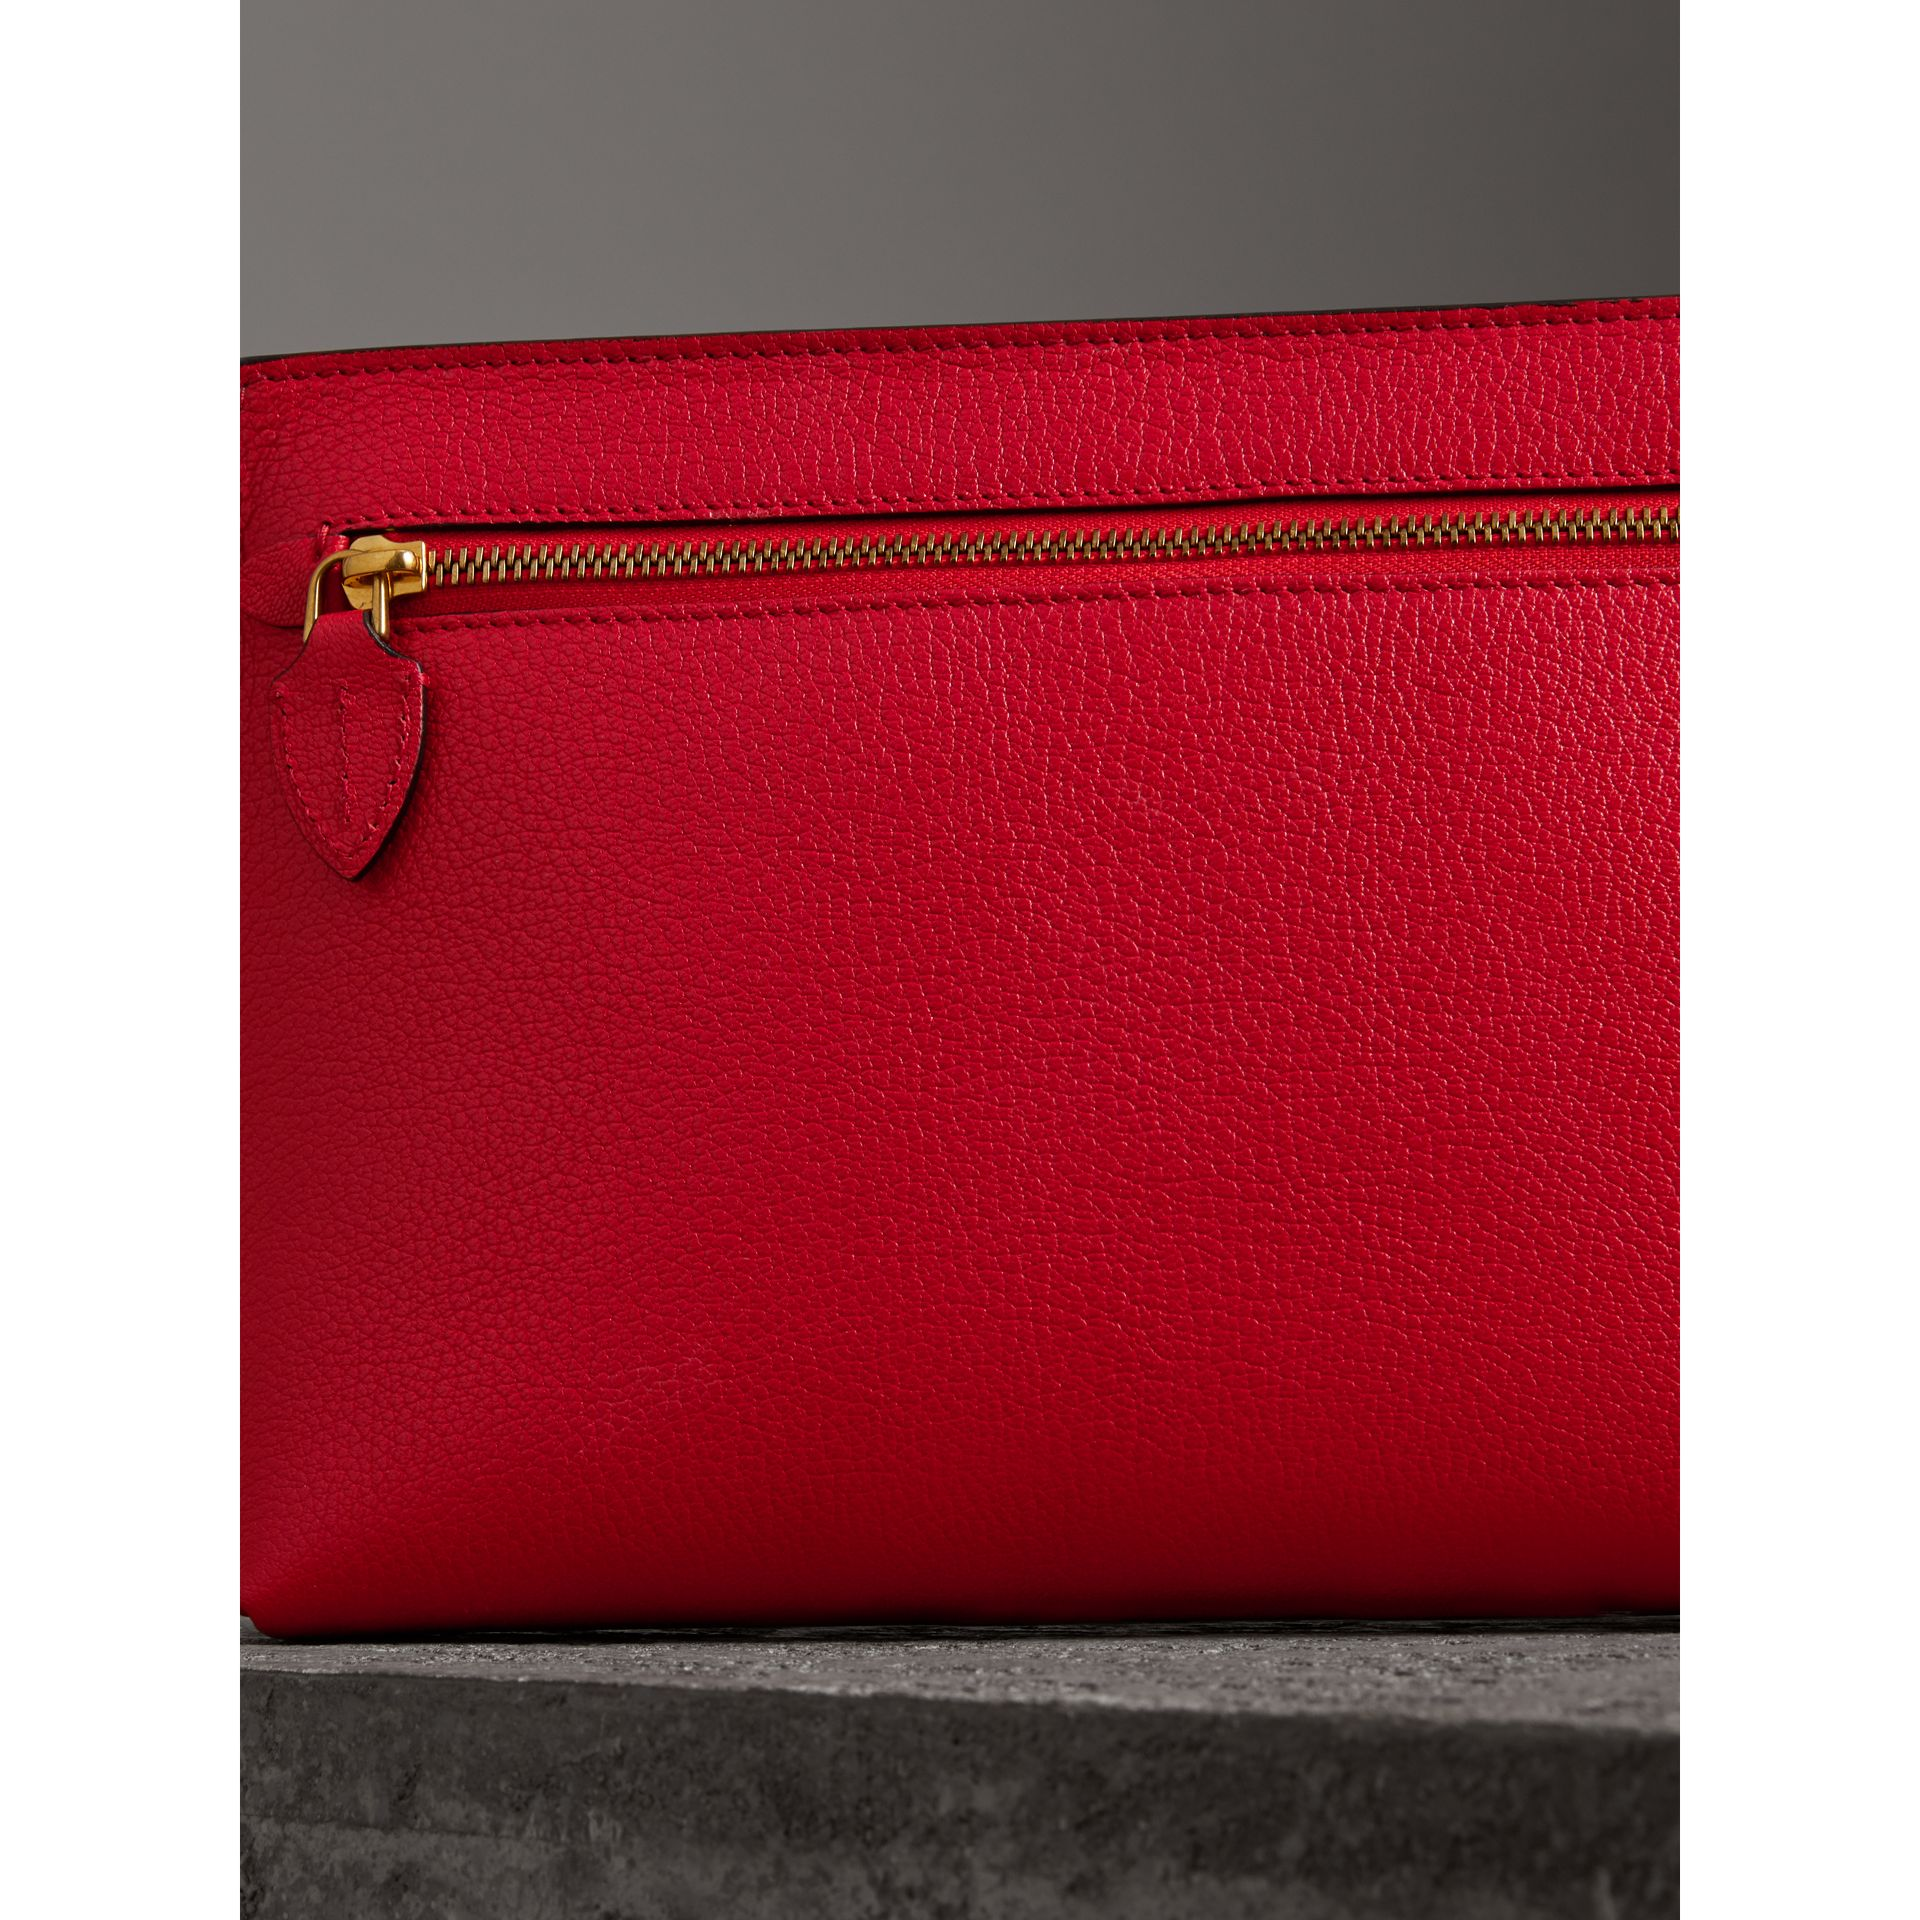 Grainy Leather Wristlet Clutch in Bright Red - Women | Burberry - gallery image 2